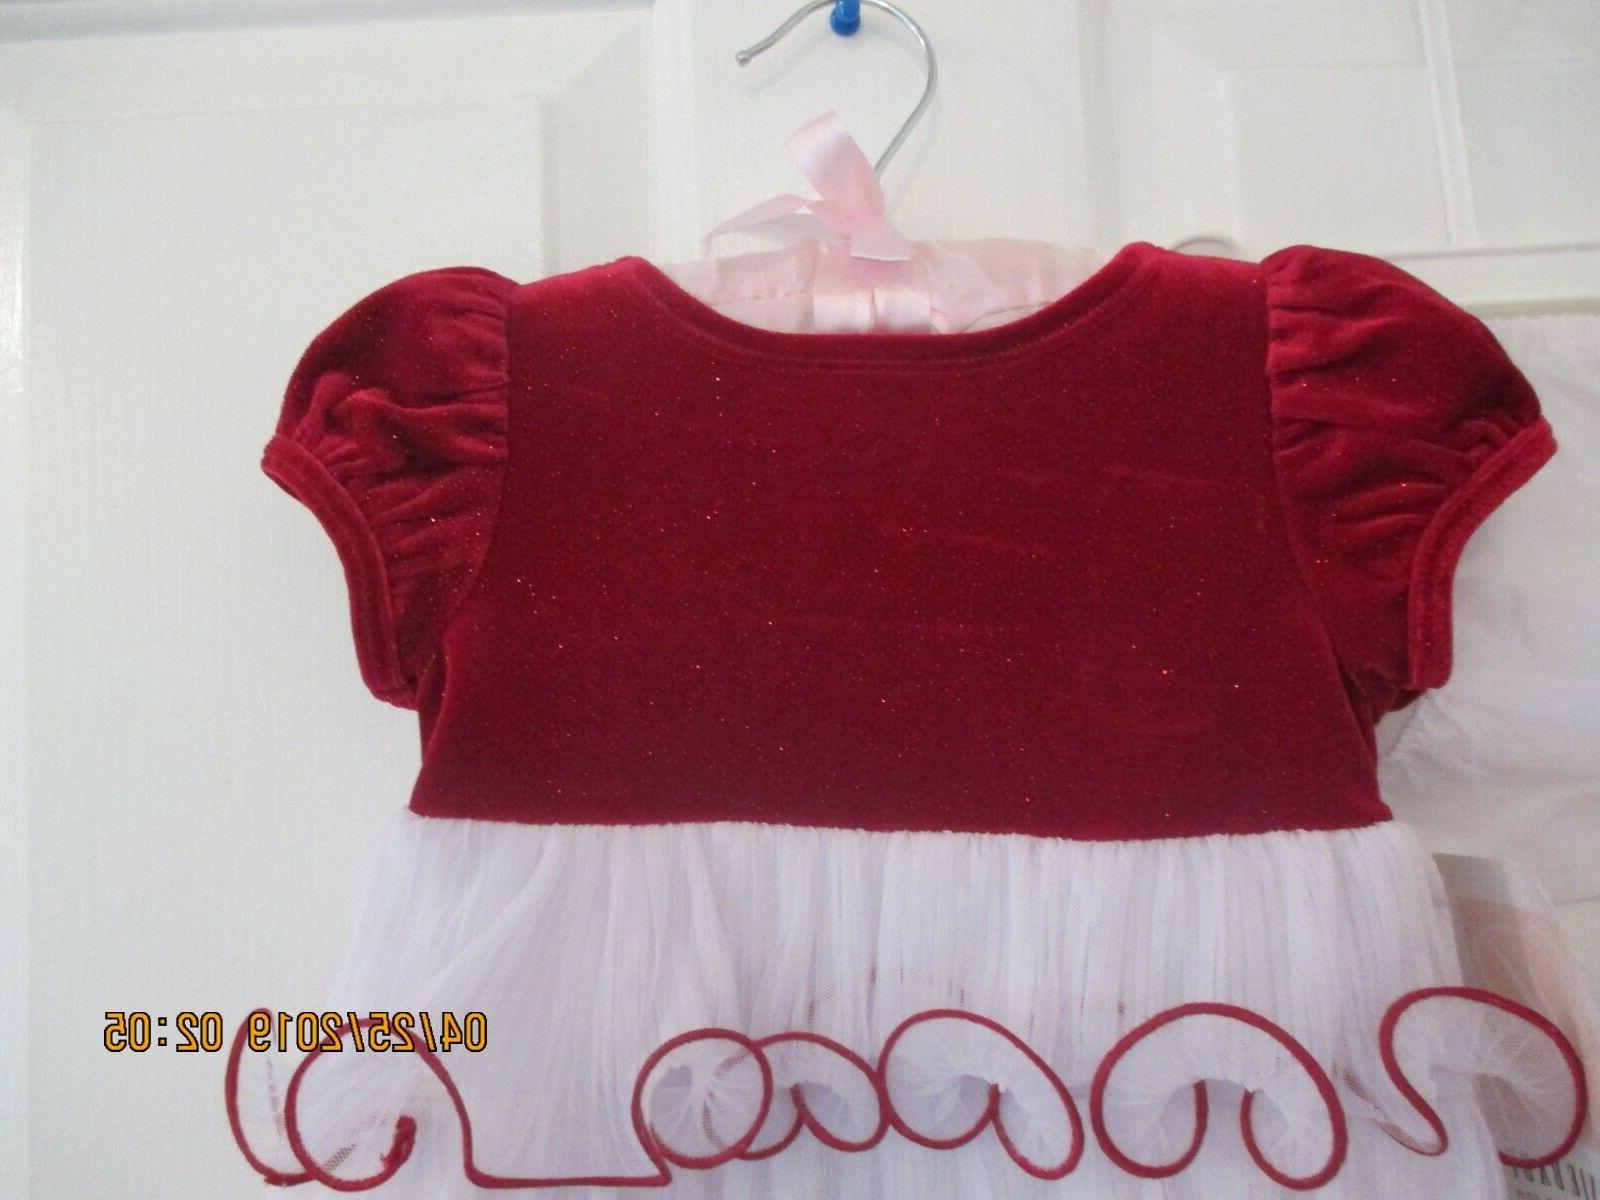 baby size 12 months and diaper cover